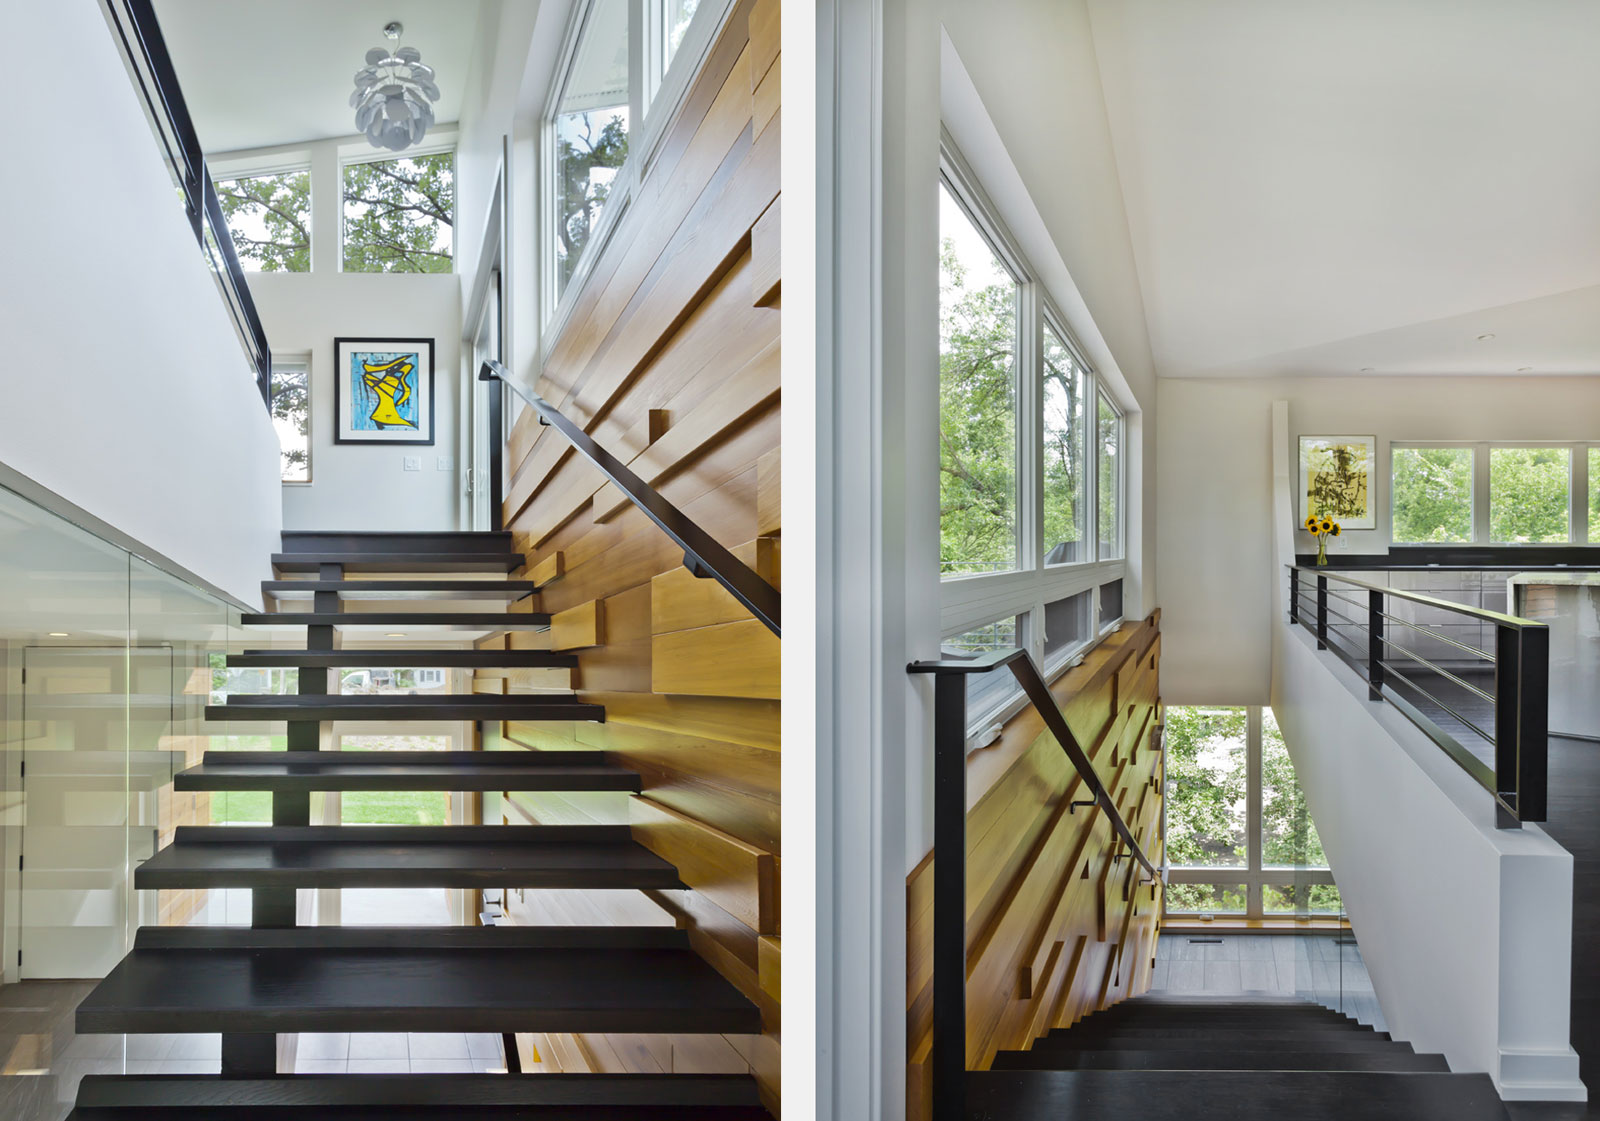 burnham-road-house_interior_stair-2-ways.jpg